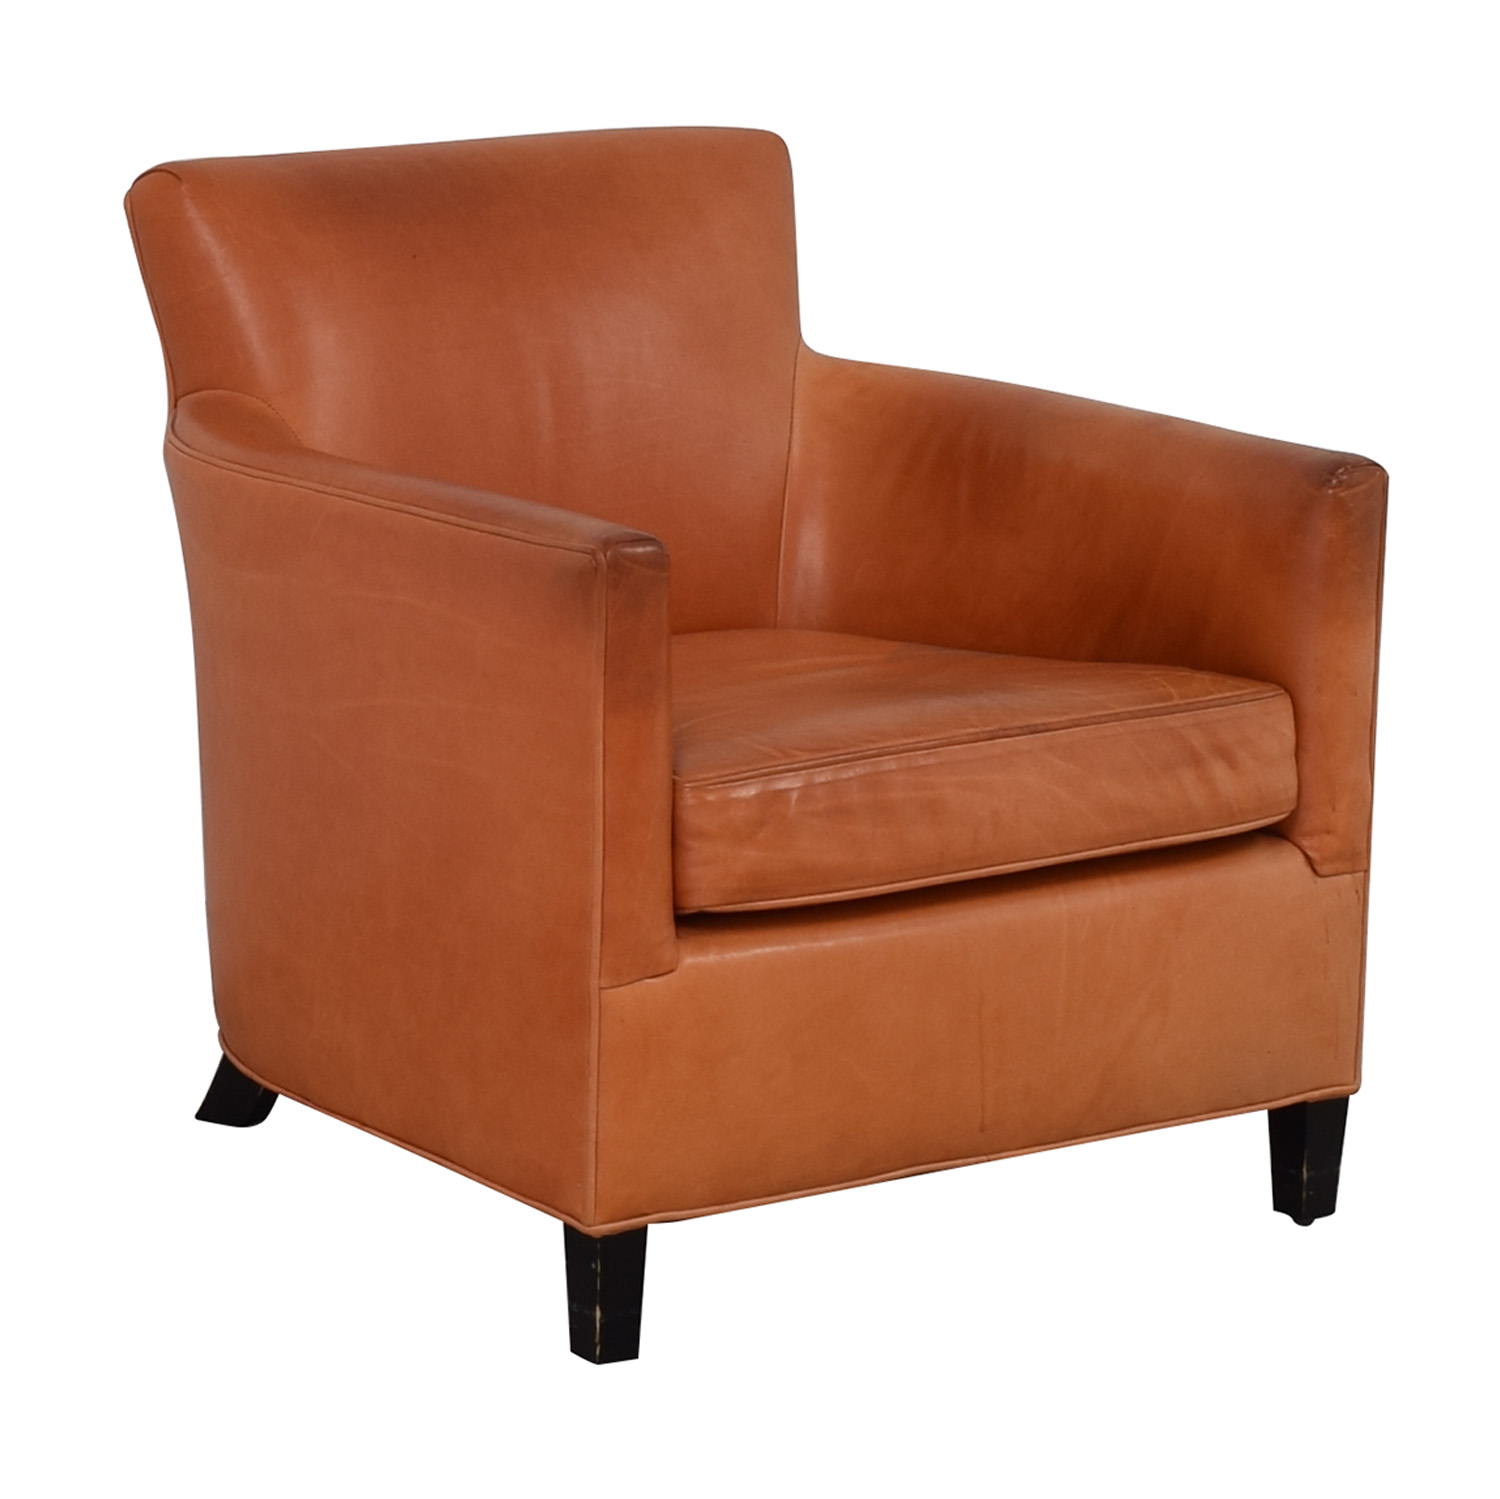 Crate & Barrel Orange Accent Chair / Accent Chairs